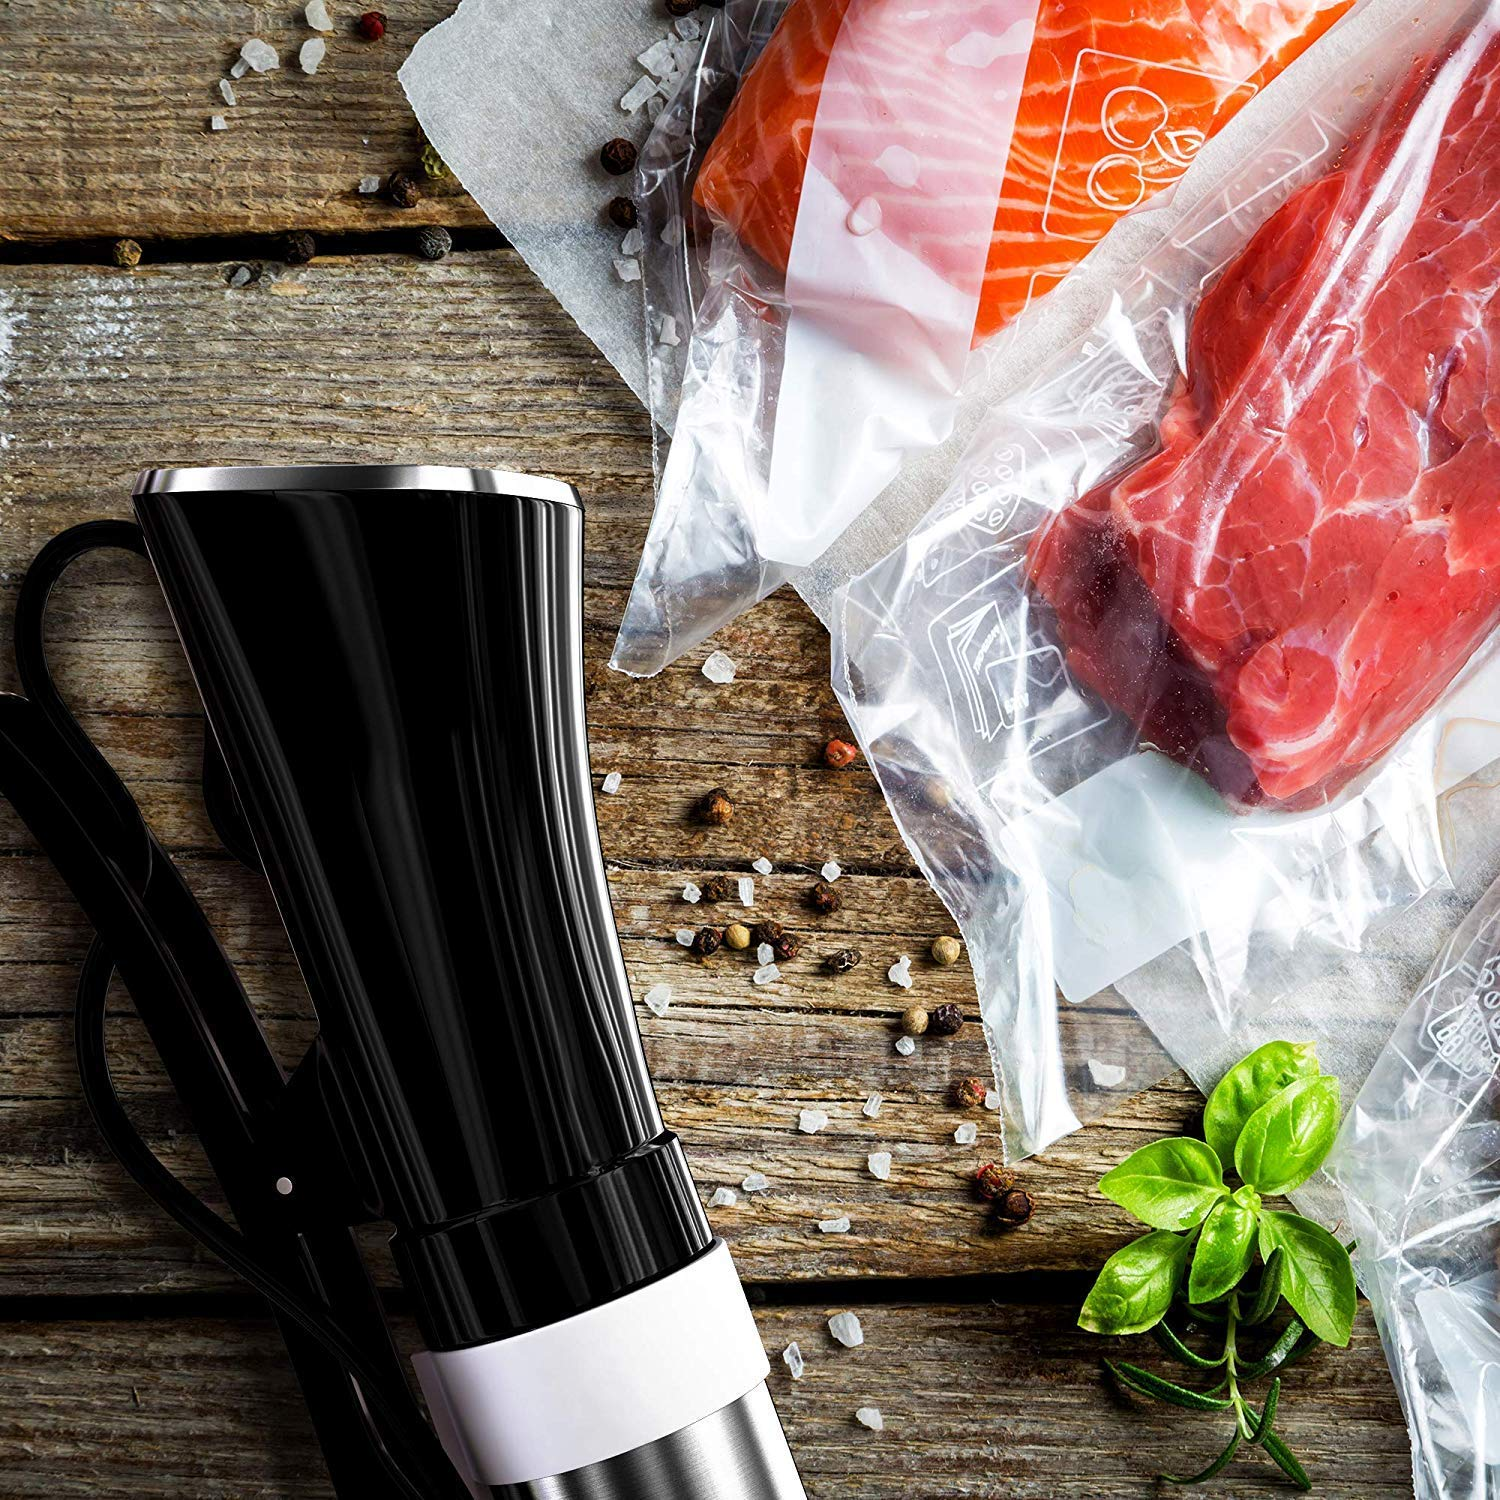 Malaha Sous Vide Cooker 1000W - Immersion Circulator - Professional Machine - Sous Vide Vacuum Heater - Accurate Temperature Digital Timer - Ultra Quiet Working Cooker by Malaha (Image #8)